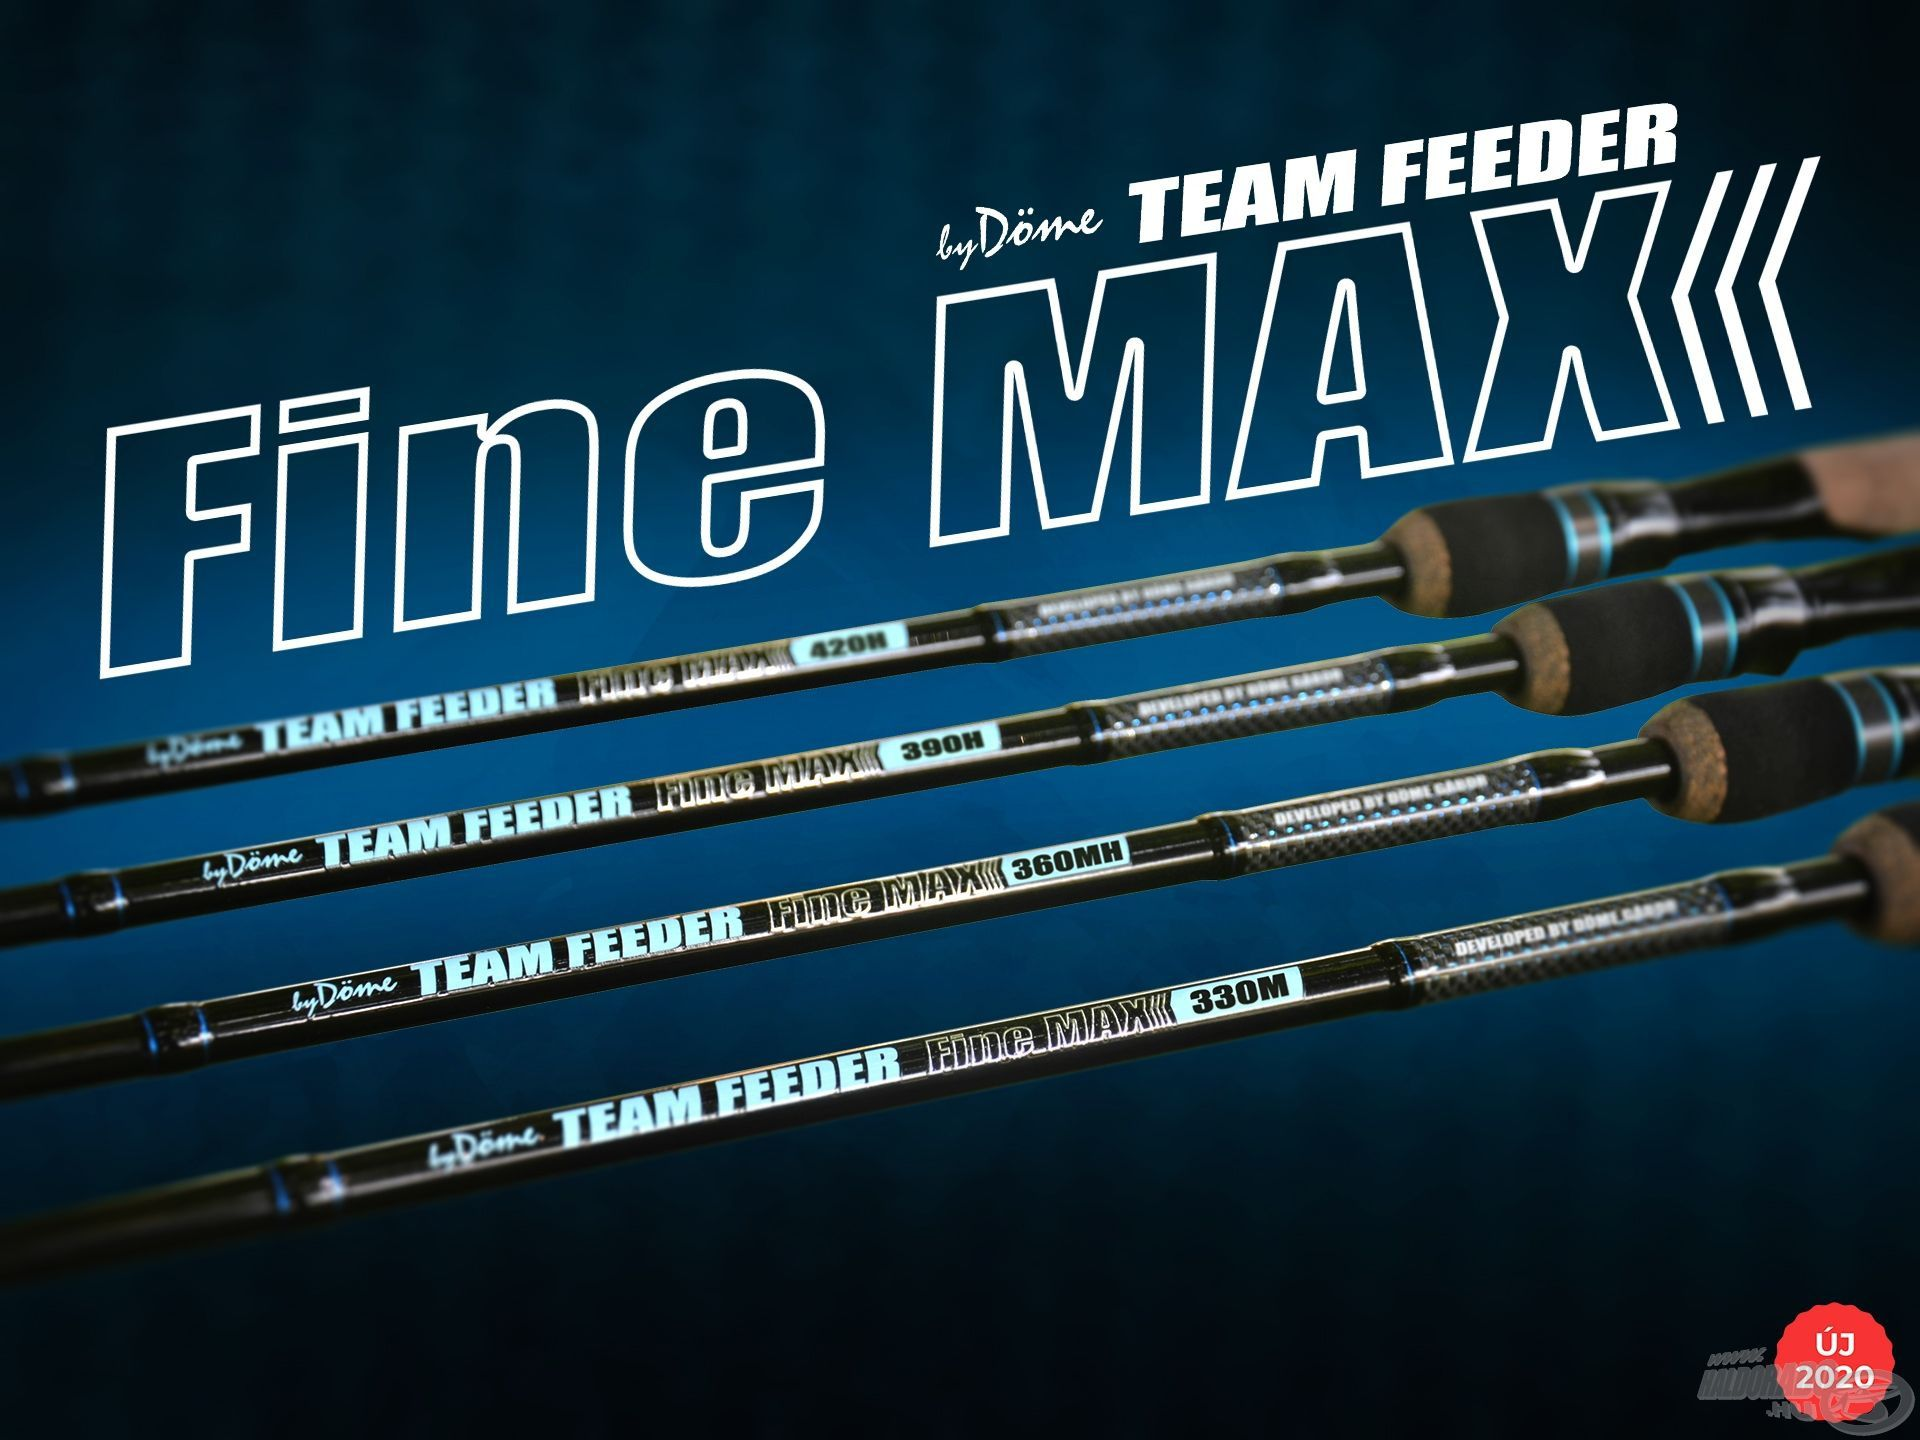 By Döme TEAM FEEDER Fine Max